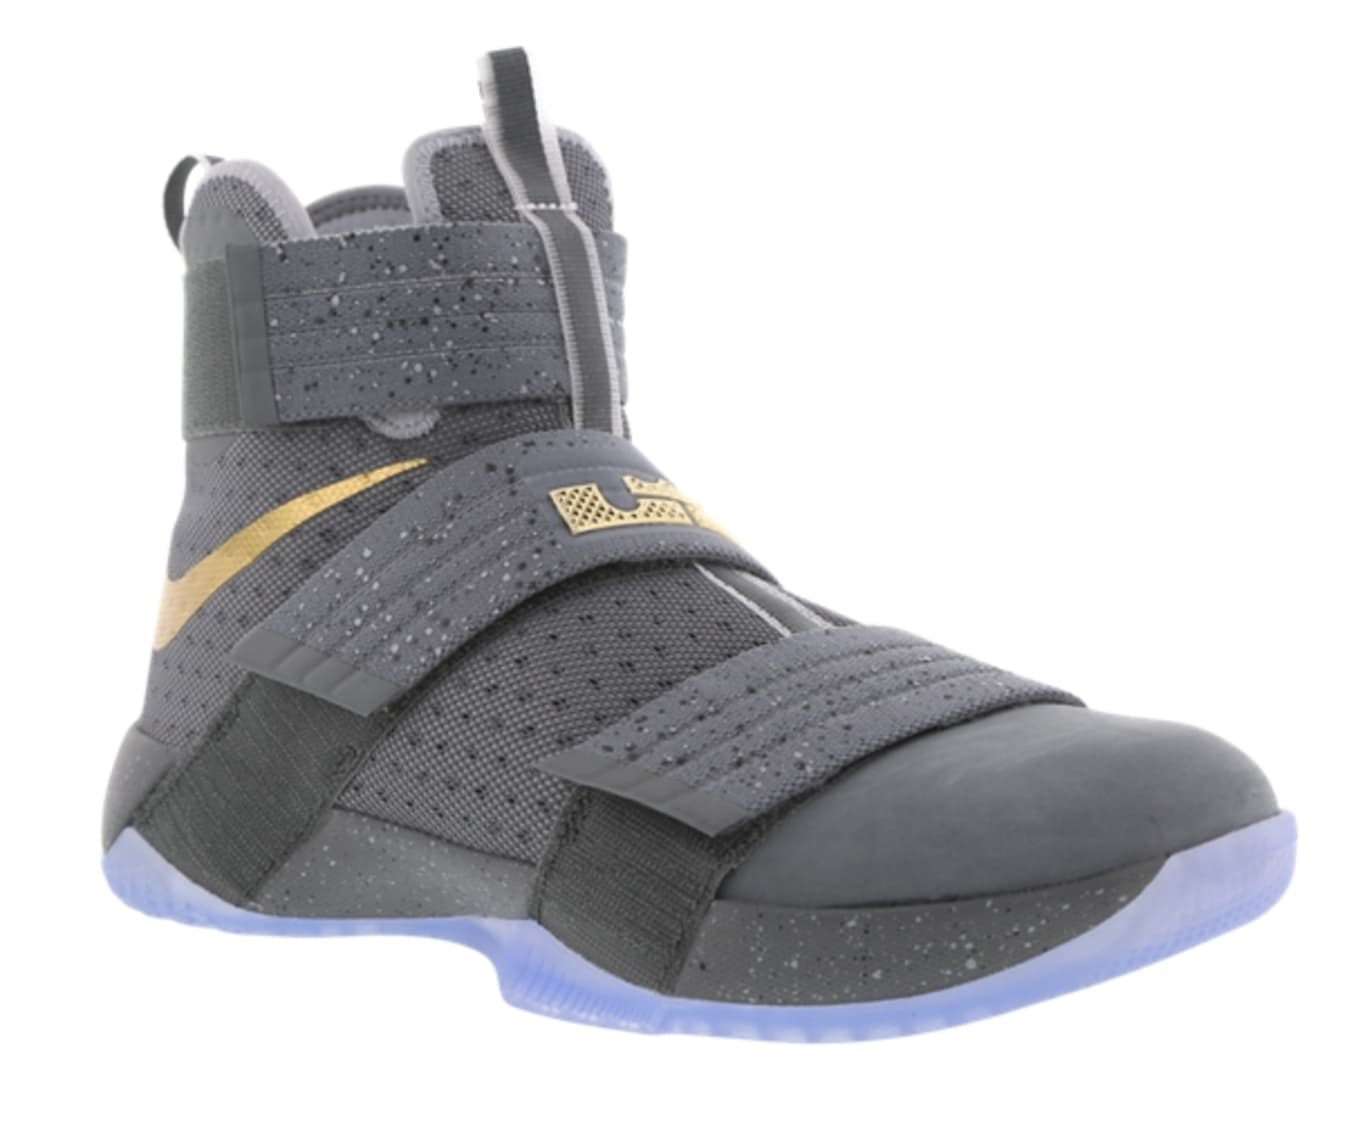 save off 217d7 63f87 Nike LeBron Soldier 10 Cool Grey Gold | Sole Collector